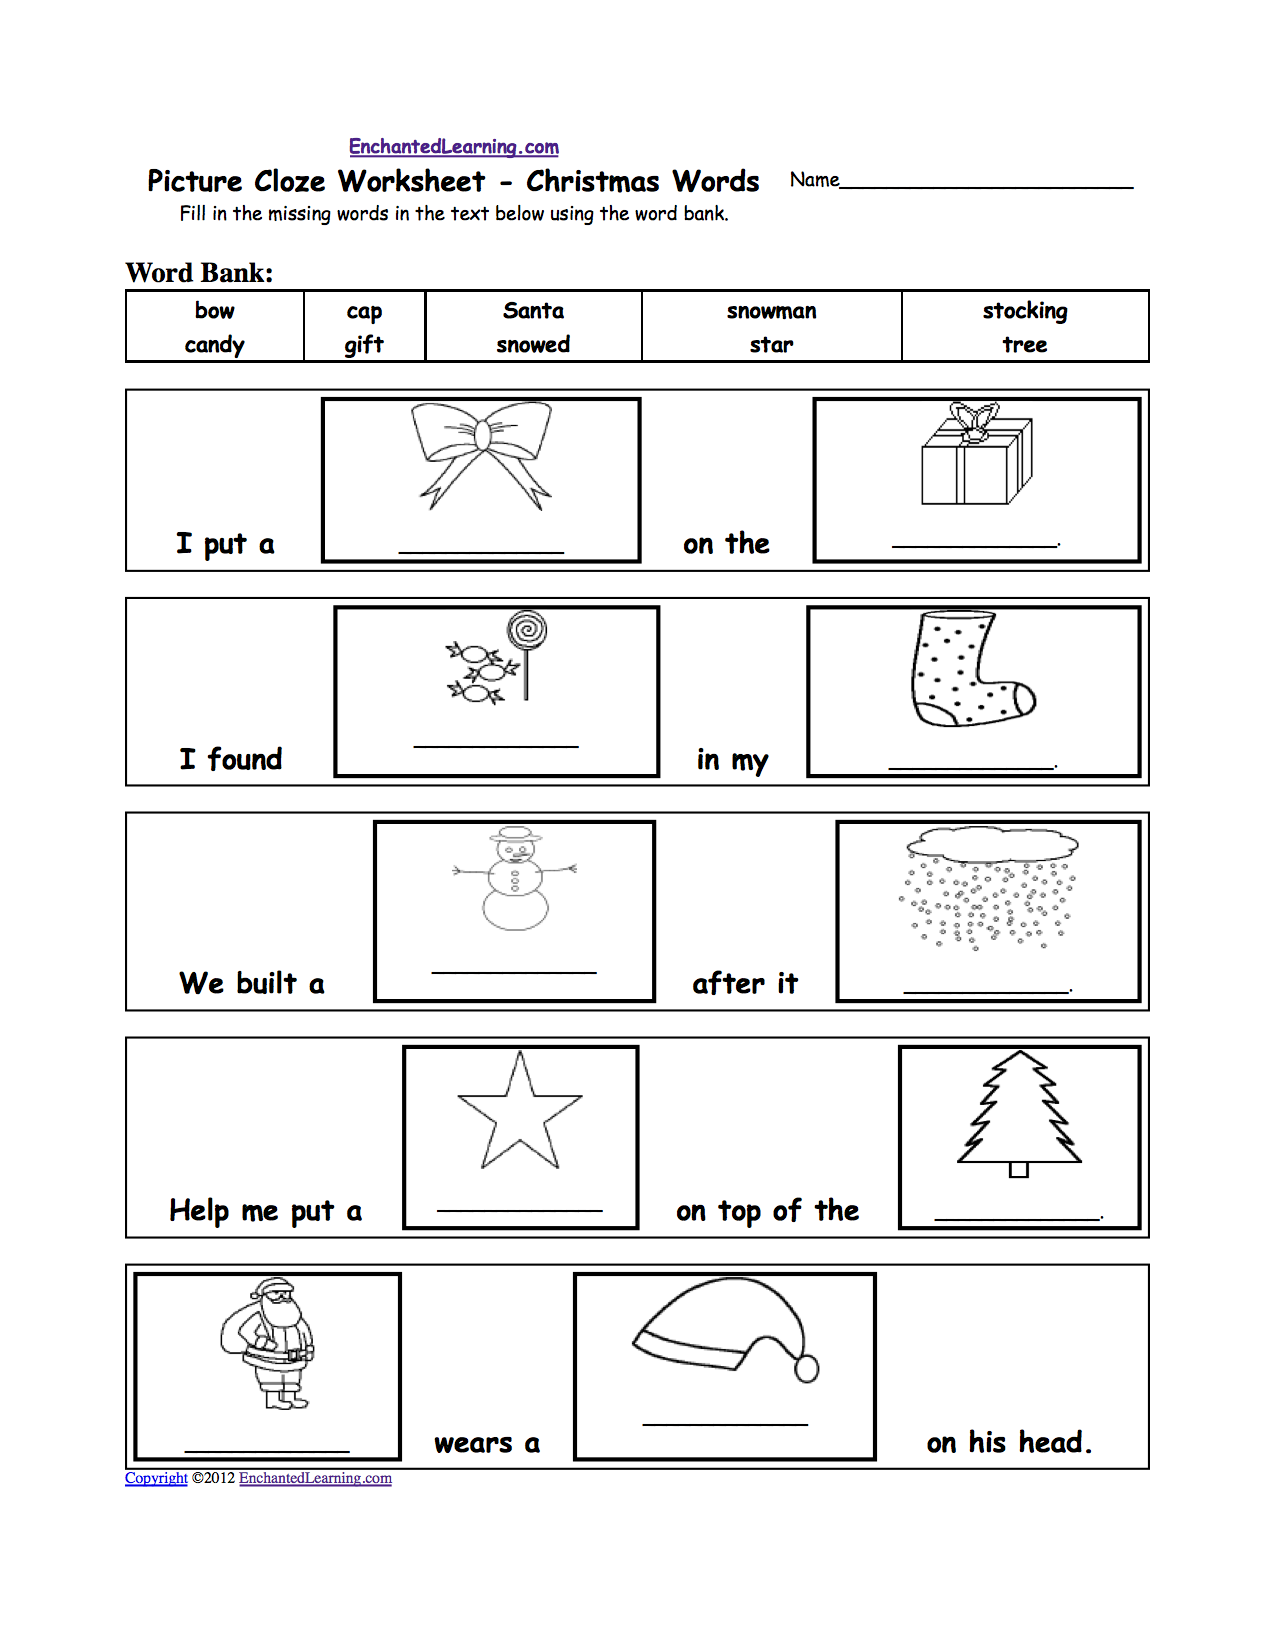 worksheet Cloze Worksheets picture cloze worksheets enchantedlearning com cloze